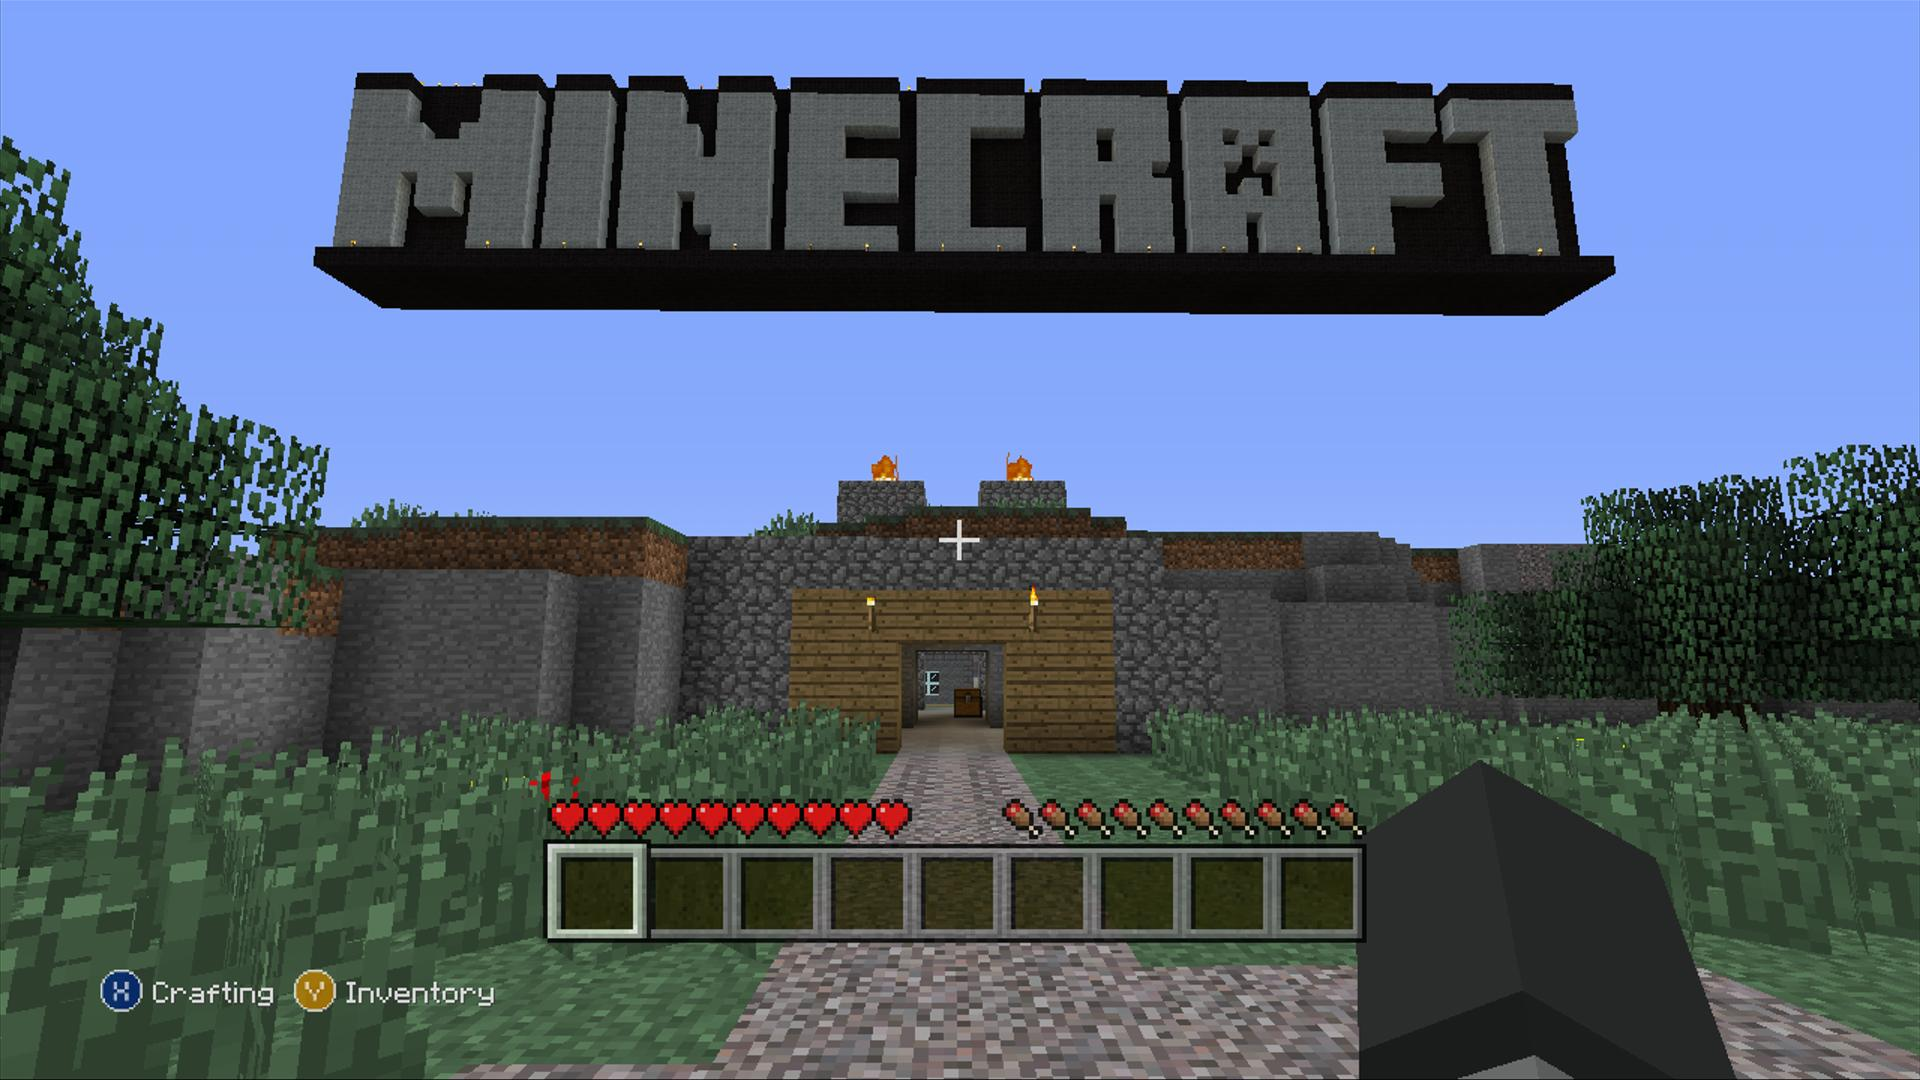 Minecraft on PlayStation a Possibility, Wii U Version Very Unlikely